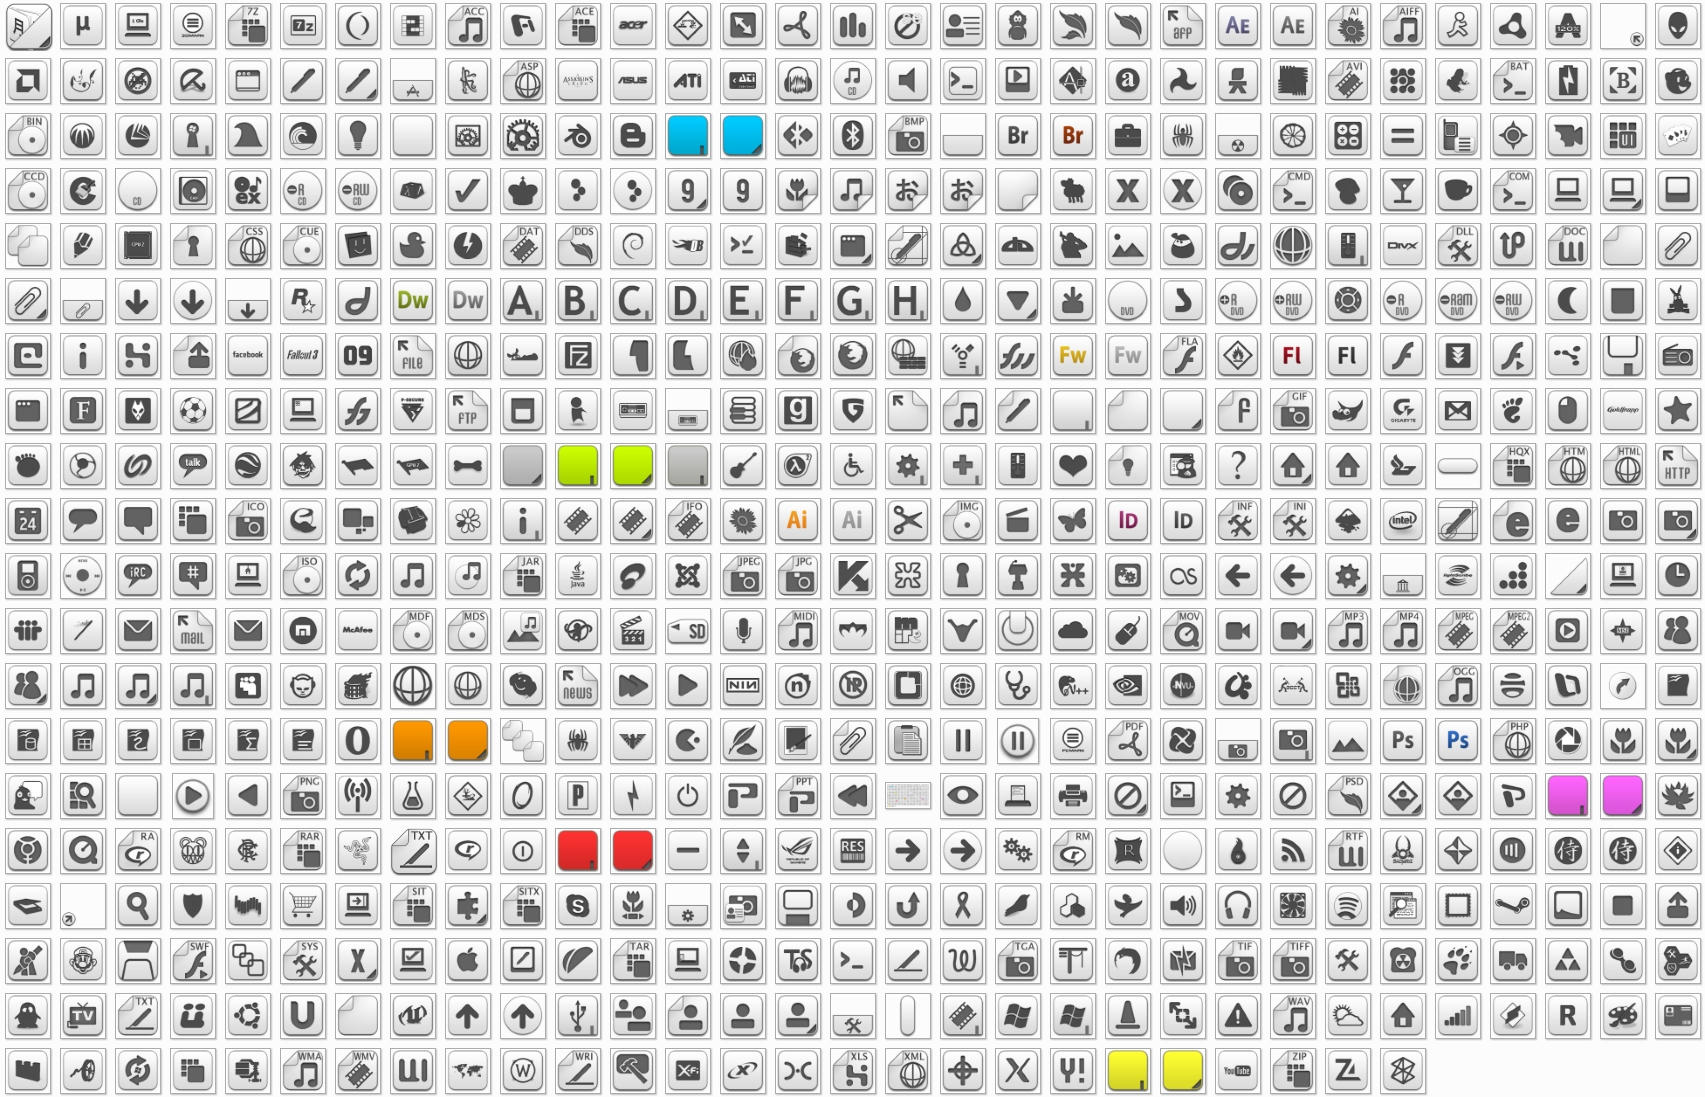 Albook extended 811 icons by StopDreaming on DeviantArt